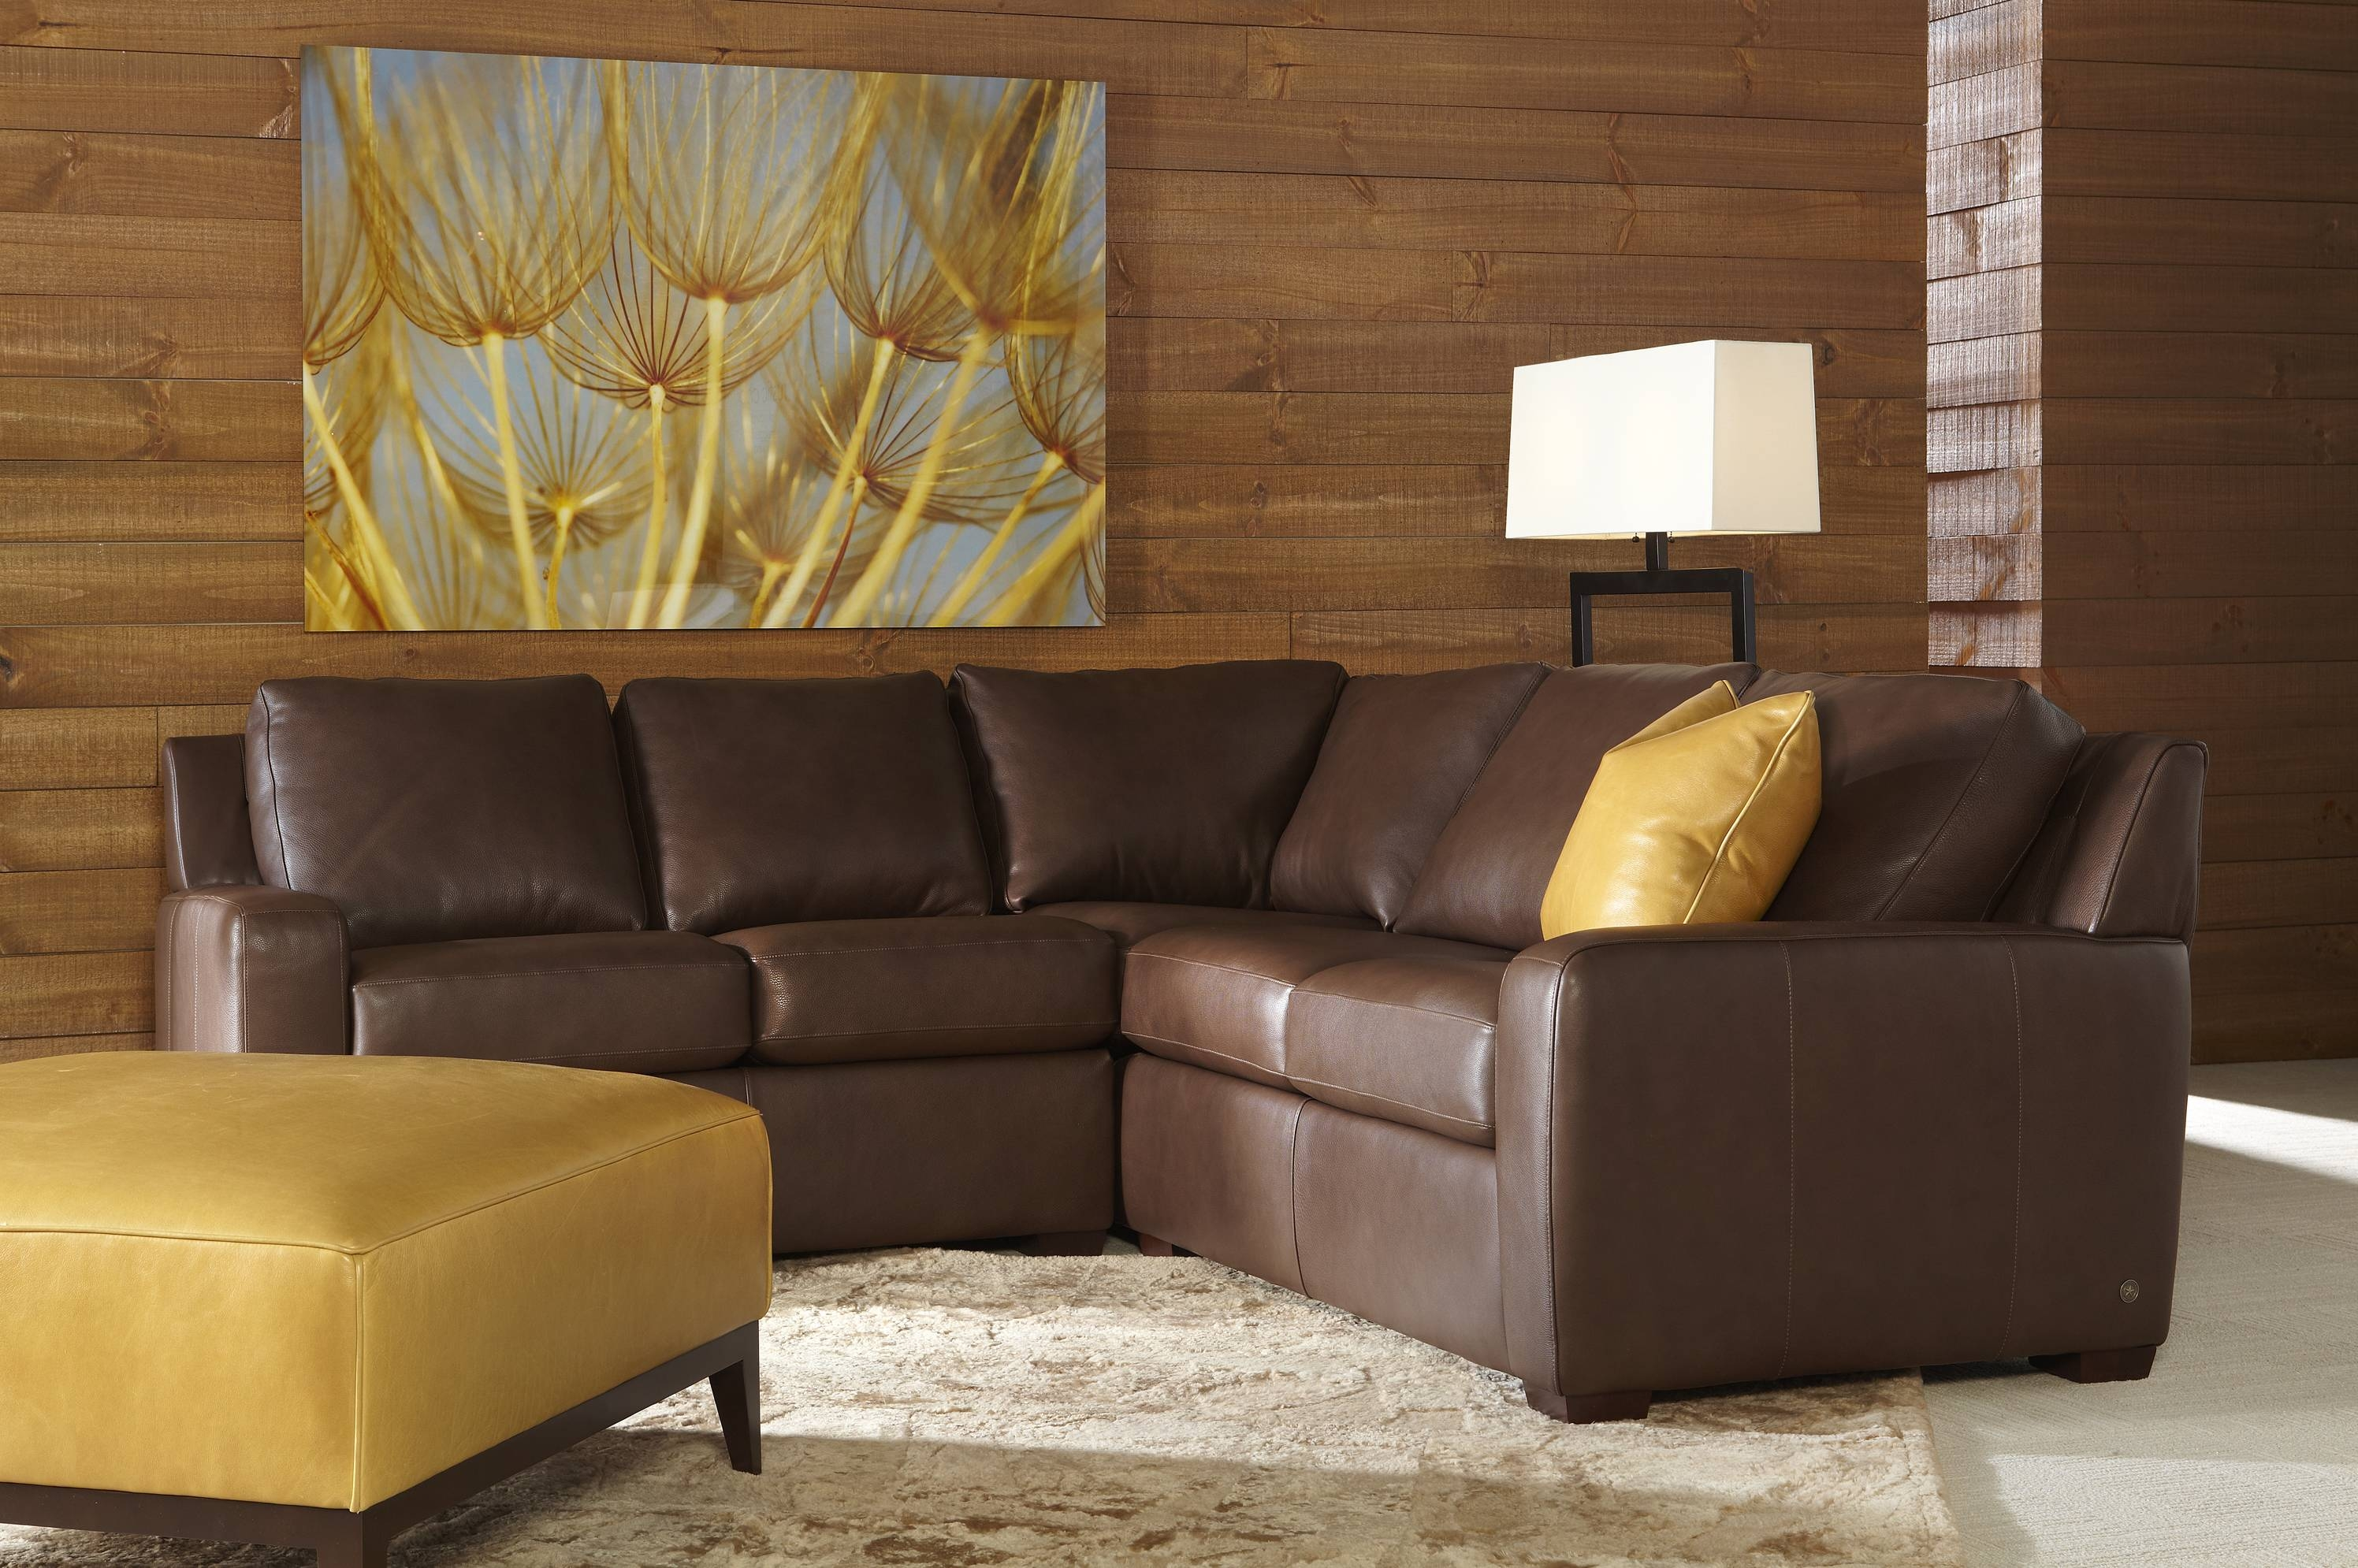 Sectional Sofas - Elegance And Style Tailored Just For Youand regarding American Sofa Beds (Image 21 of 30)